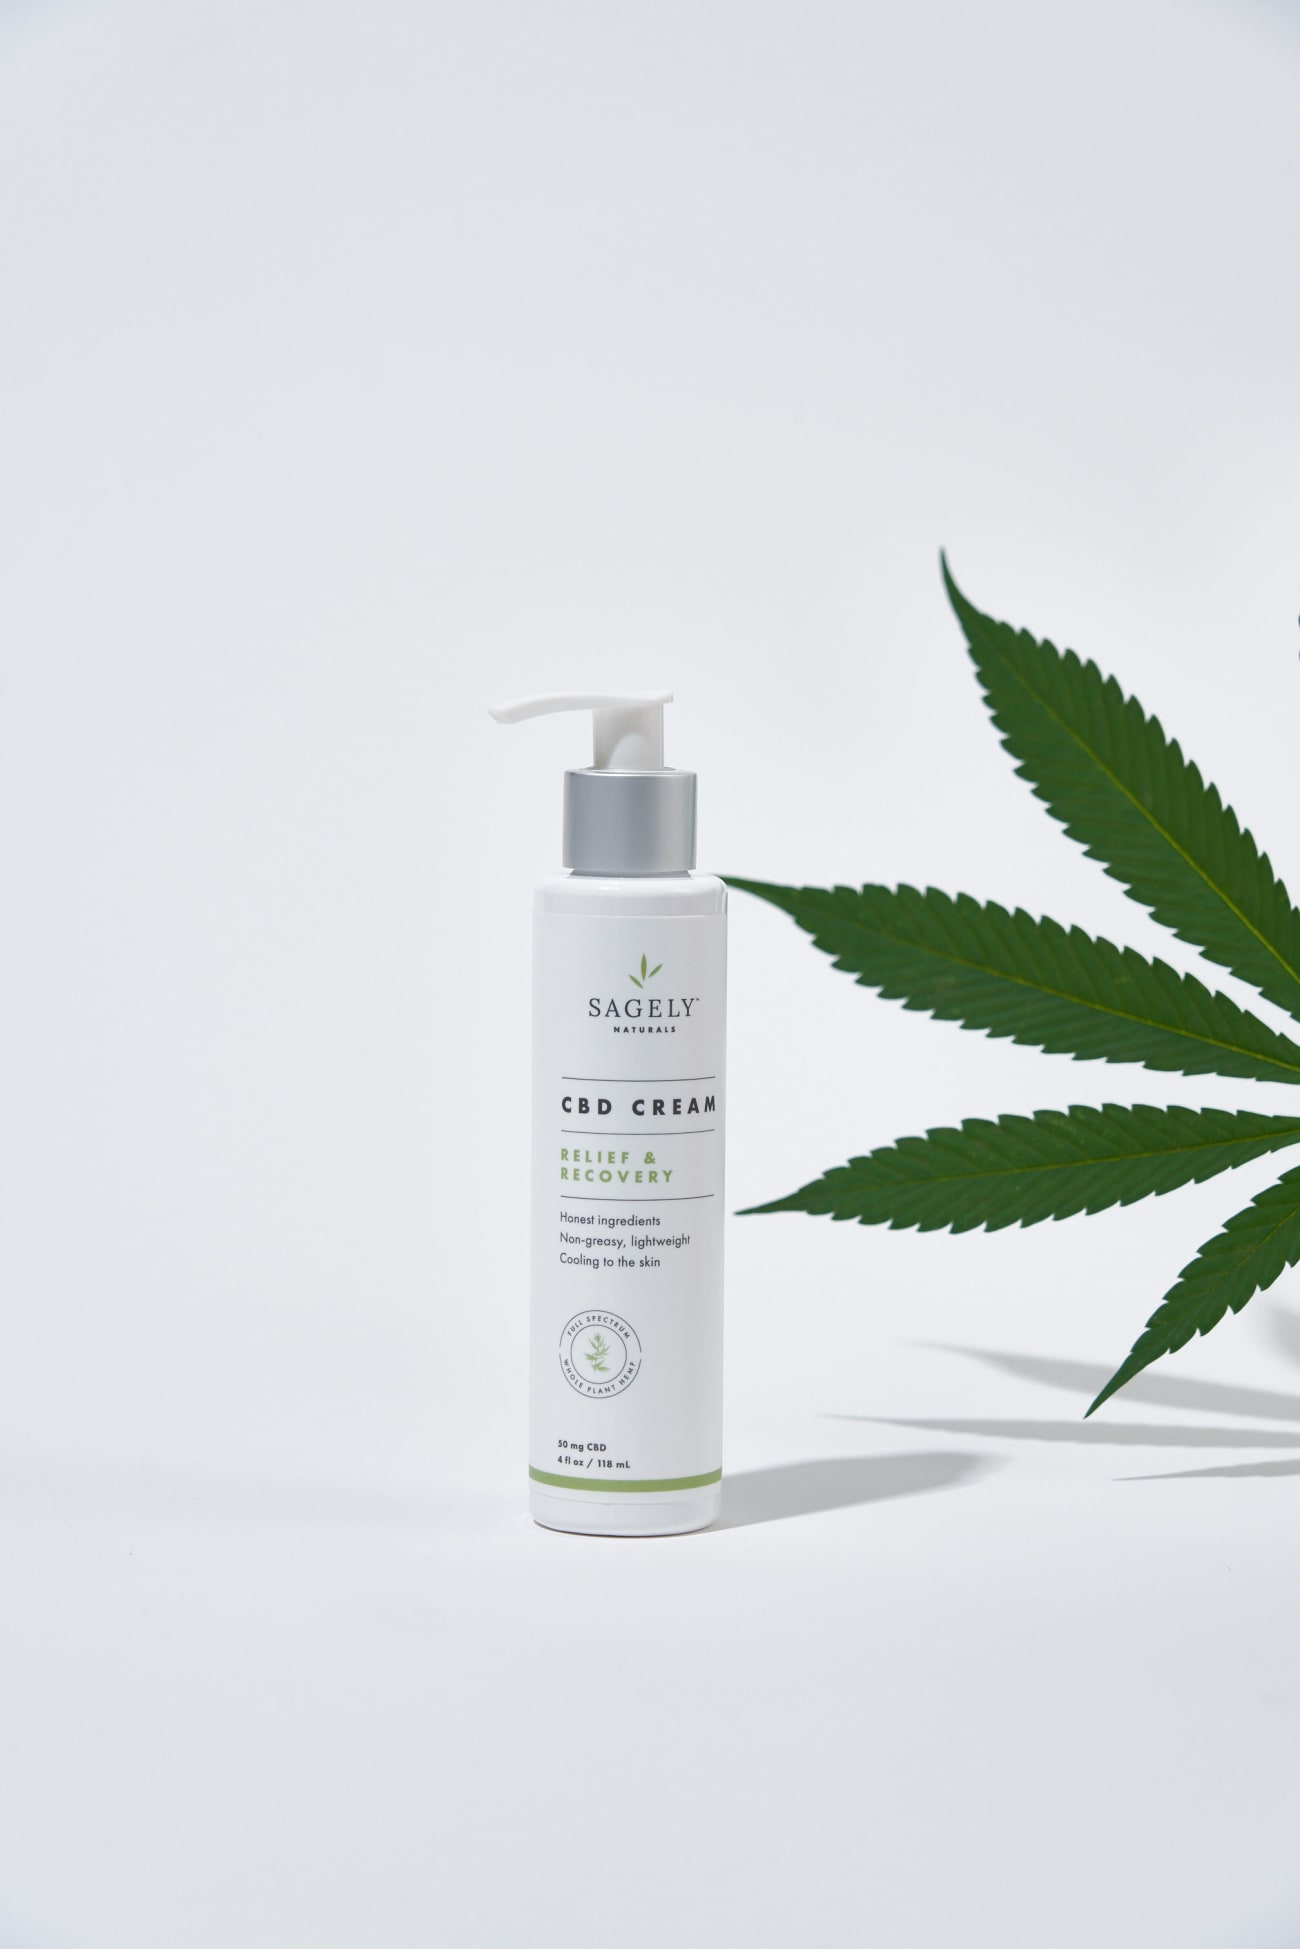 Meet our Most Popular CBD Cream